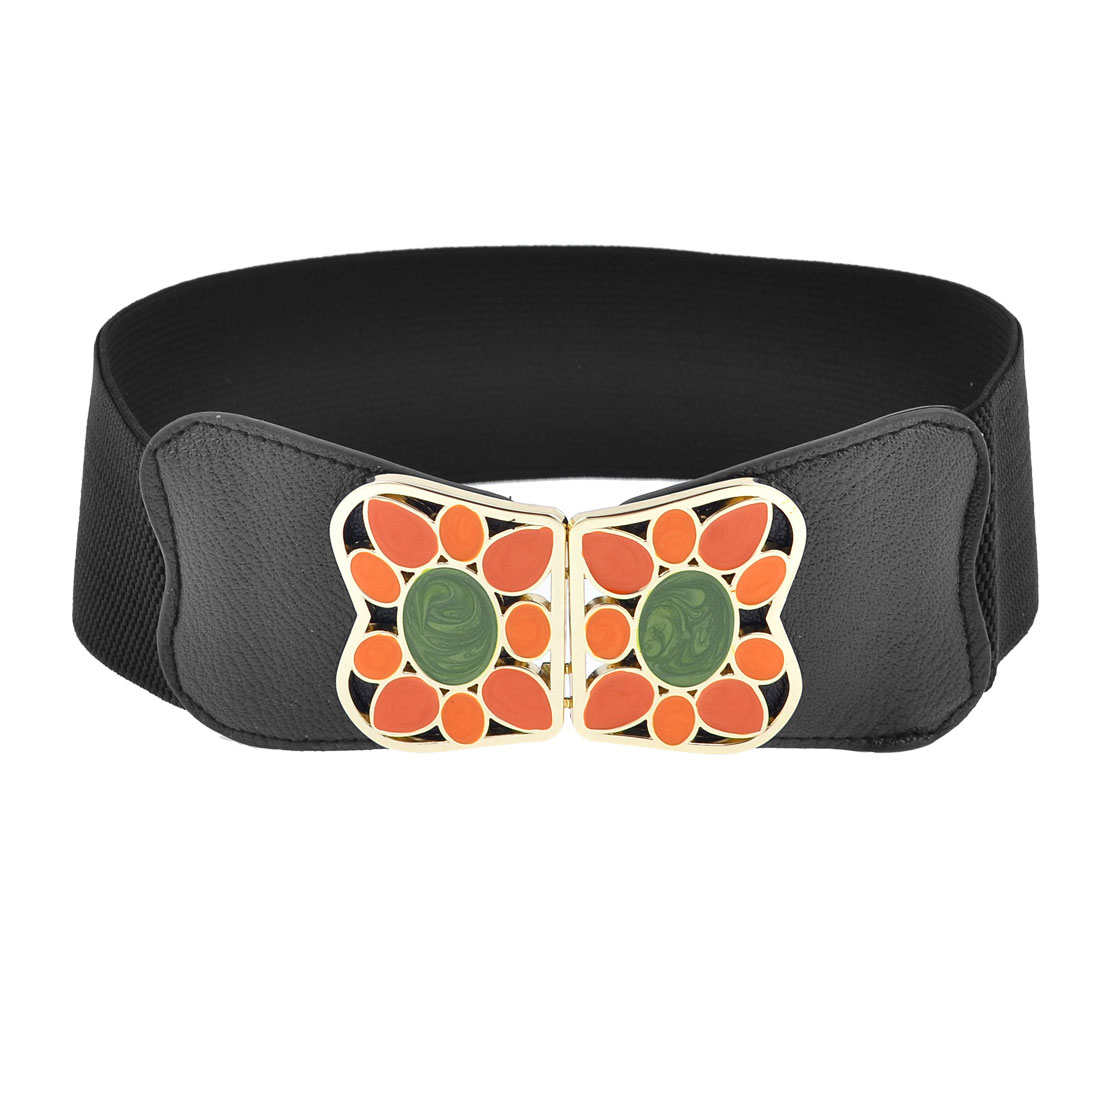 Colored Painted Metel Interlocking Closure 6cm Width Black Elastic Waistband Belt